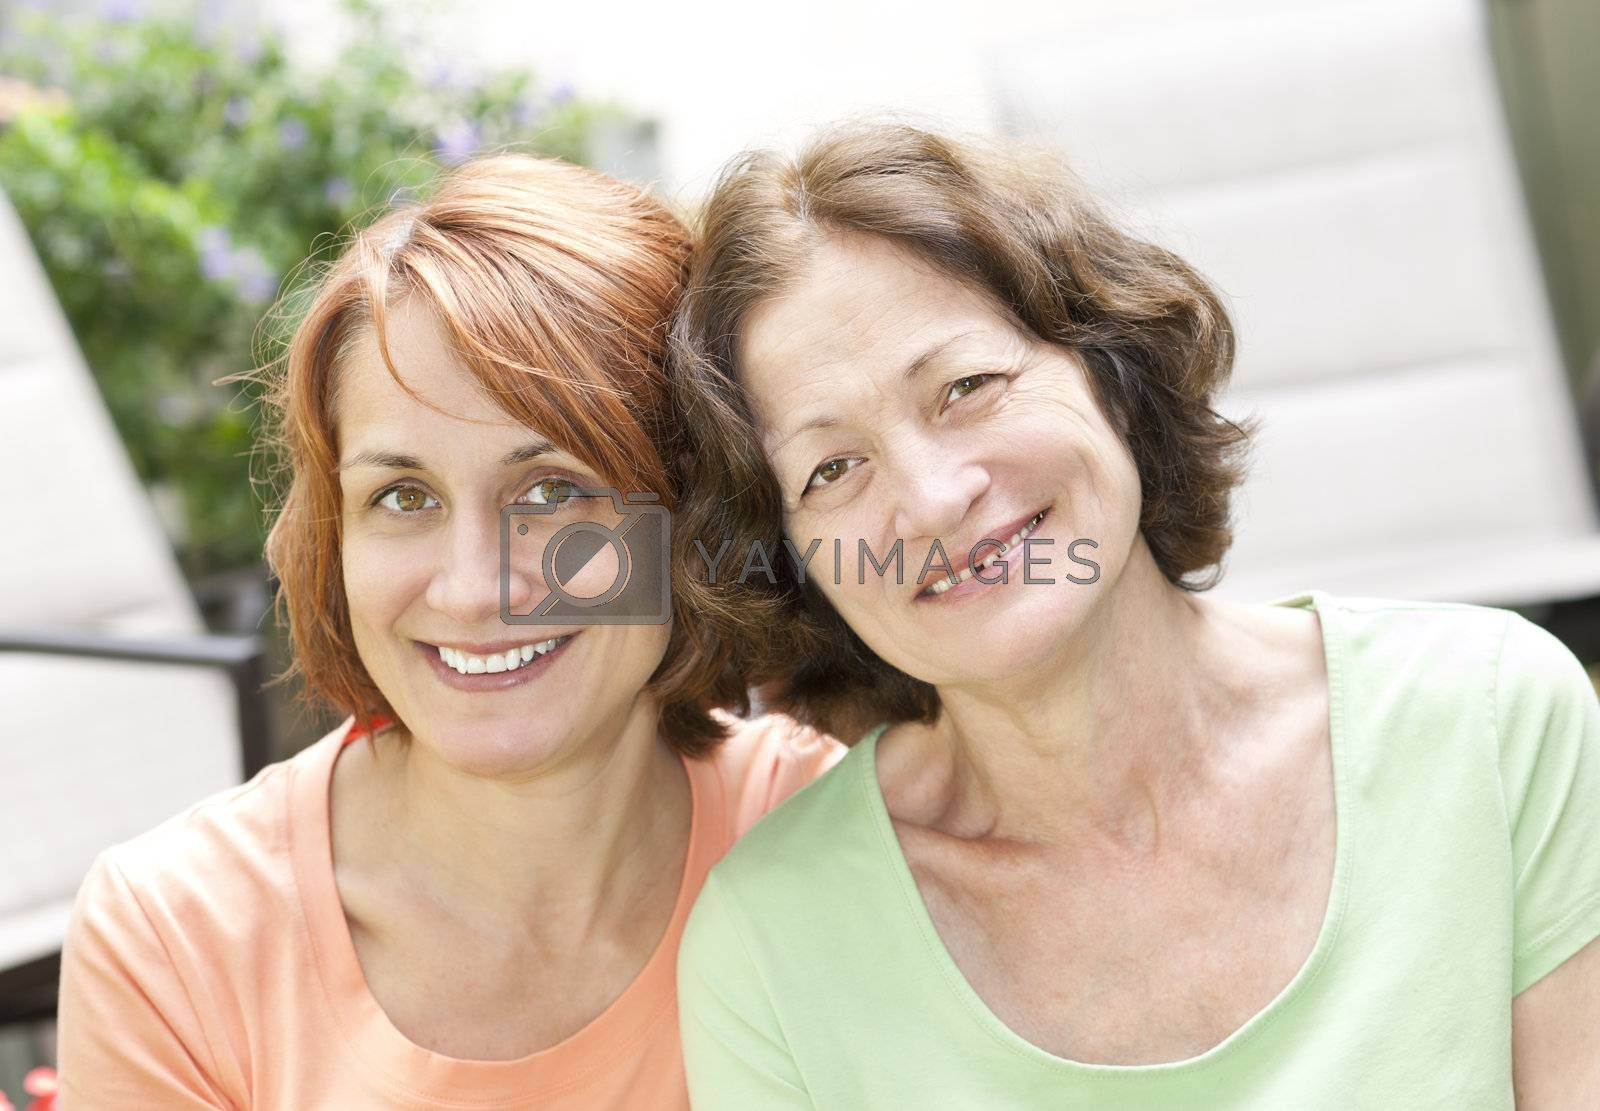 Family portrait of smiling mature mother and daughter